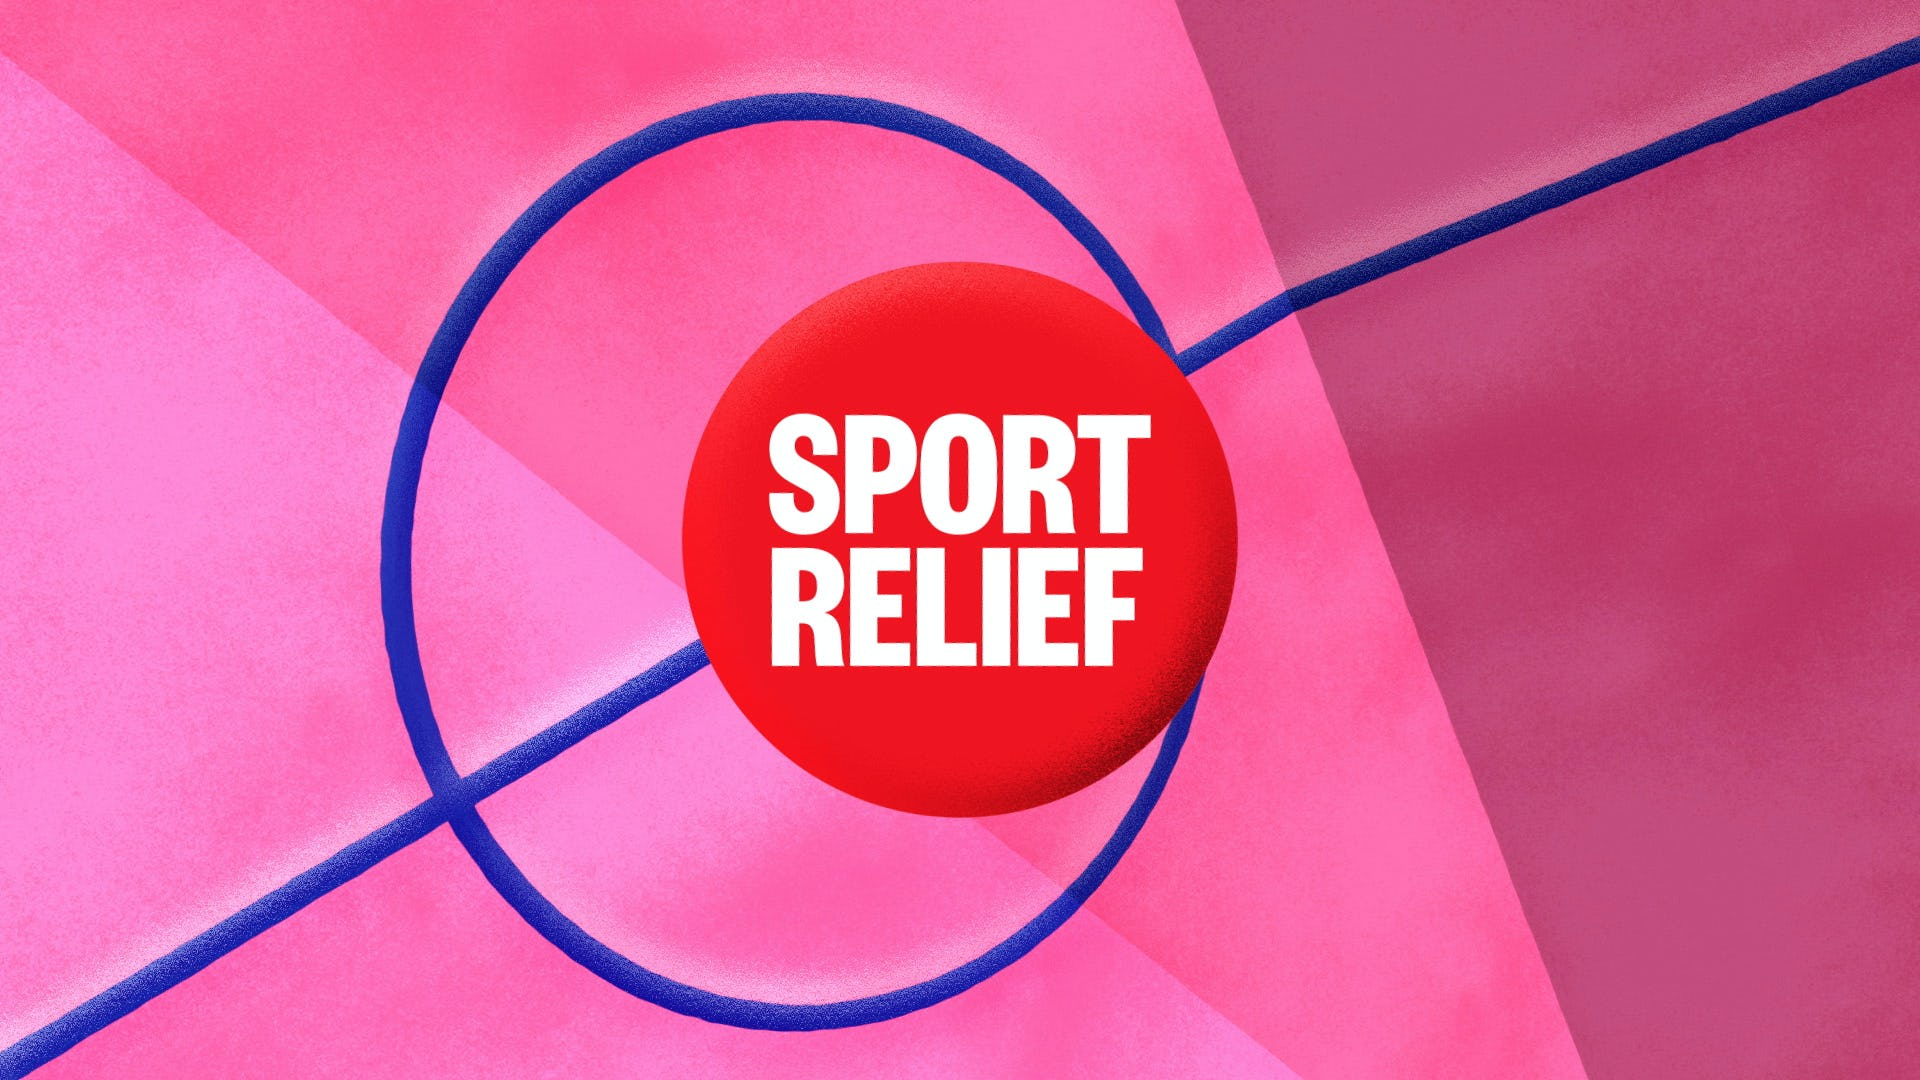 Sports relief 2020 Title design pink with blue lines